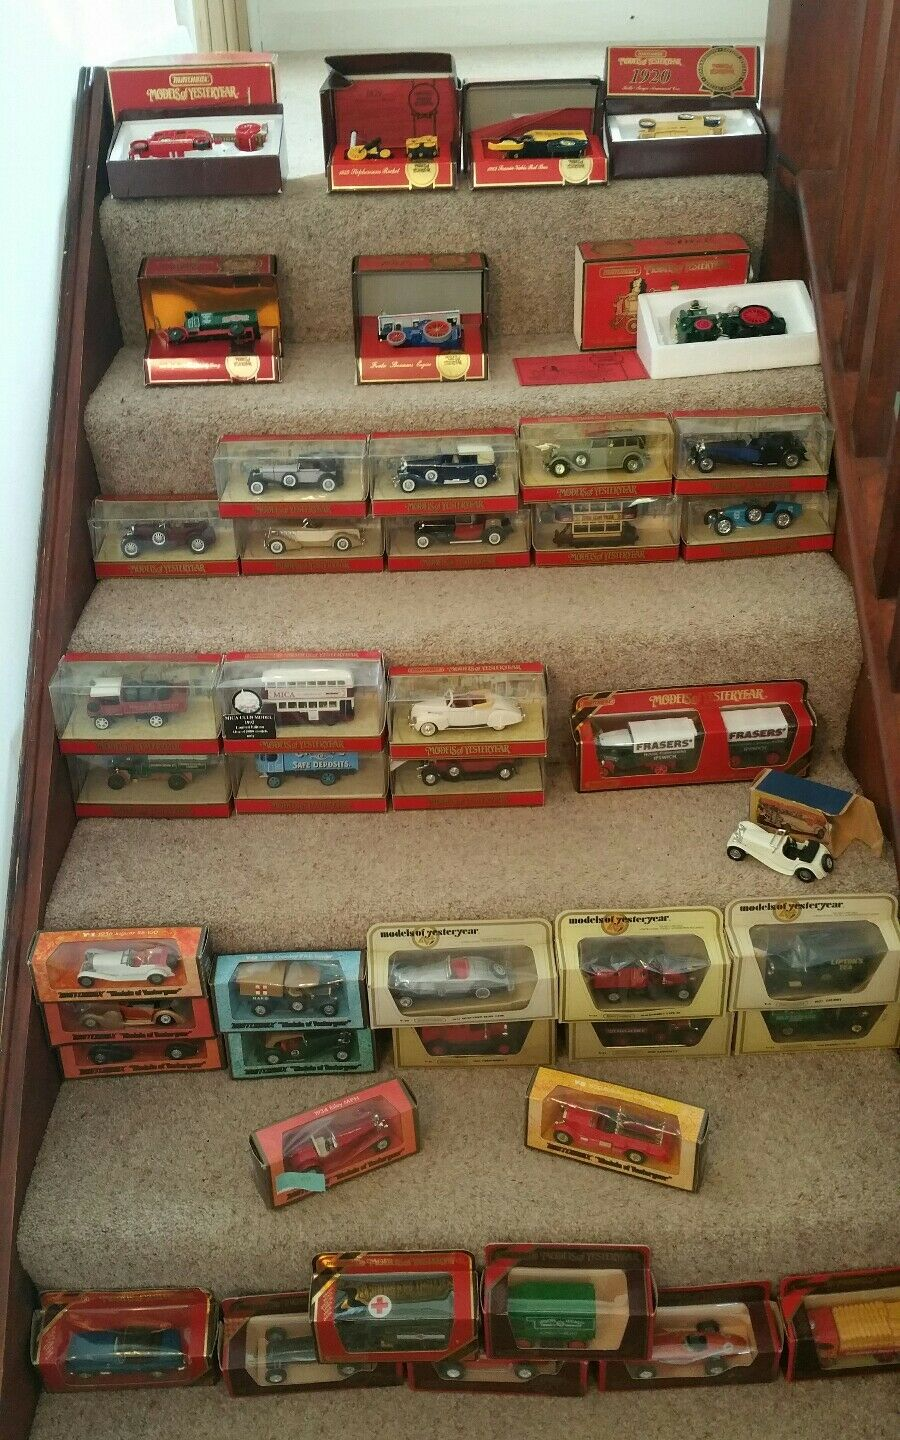 44 Matchbox models of yesteryear in their original box. Job lot